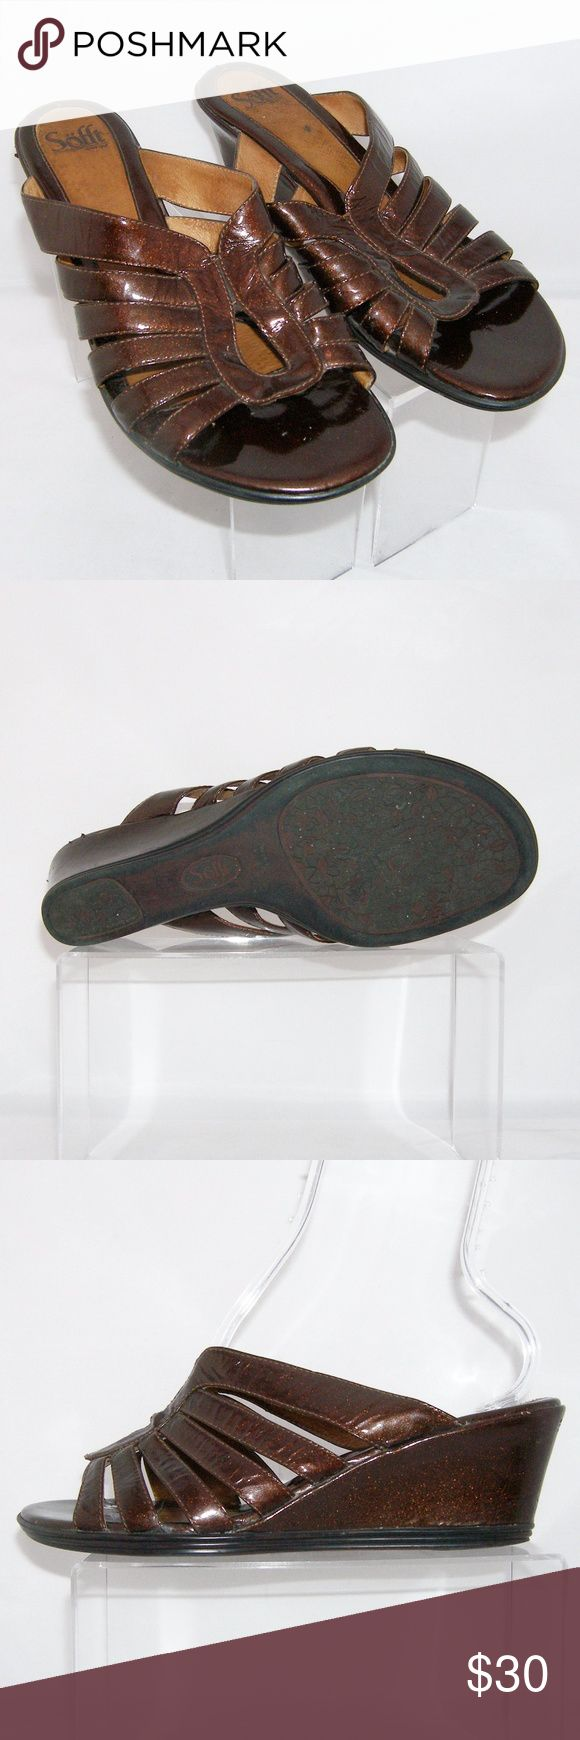 """Sofft bronze metallic leather sandal wedge 10M These Sofft shoes features a metallic leather upper/lining/sock, slip on design, padded insole, balance man made, man made sole, 3.75"""" width, and a 2.25"""" wedge heel. Slightly worn upper, inner, insole, heel(tear/peeling), and sole. Sofft Shoes Sandals"""